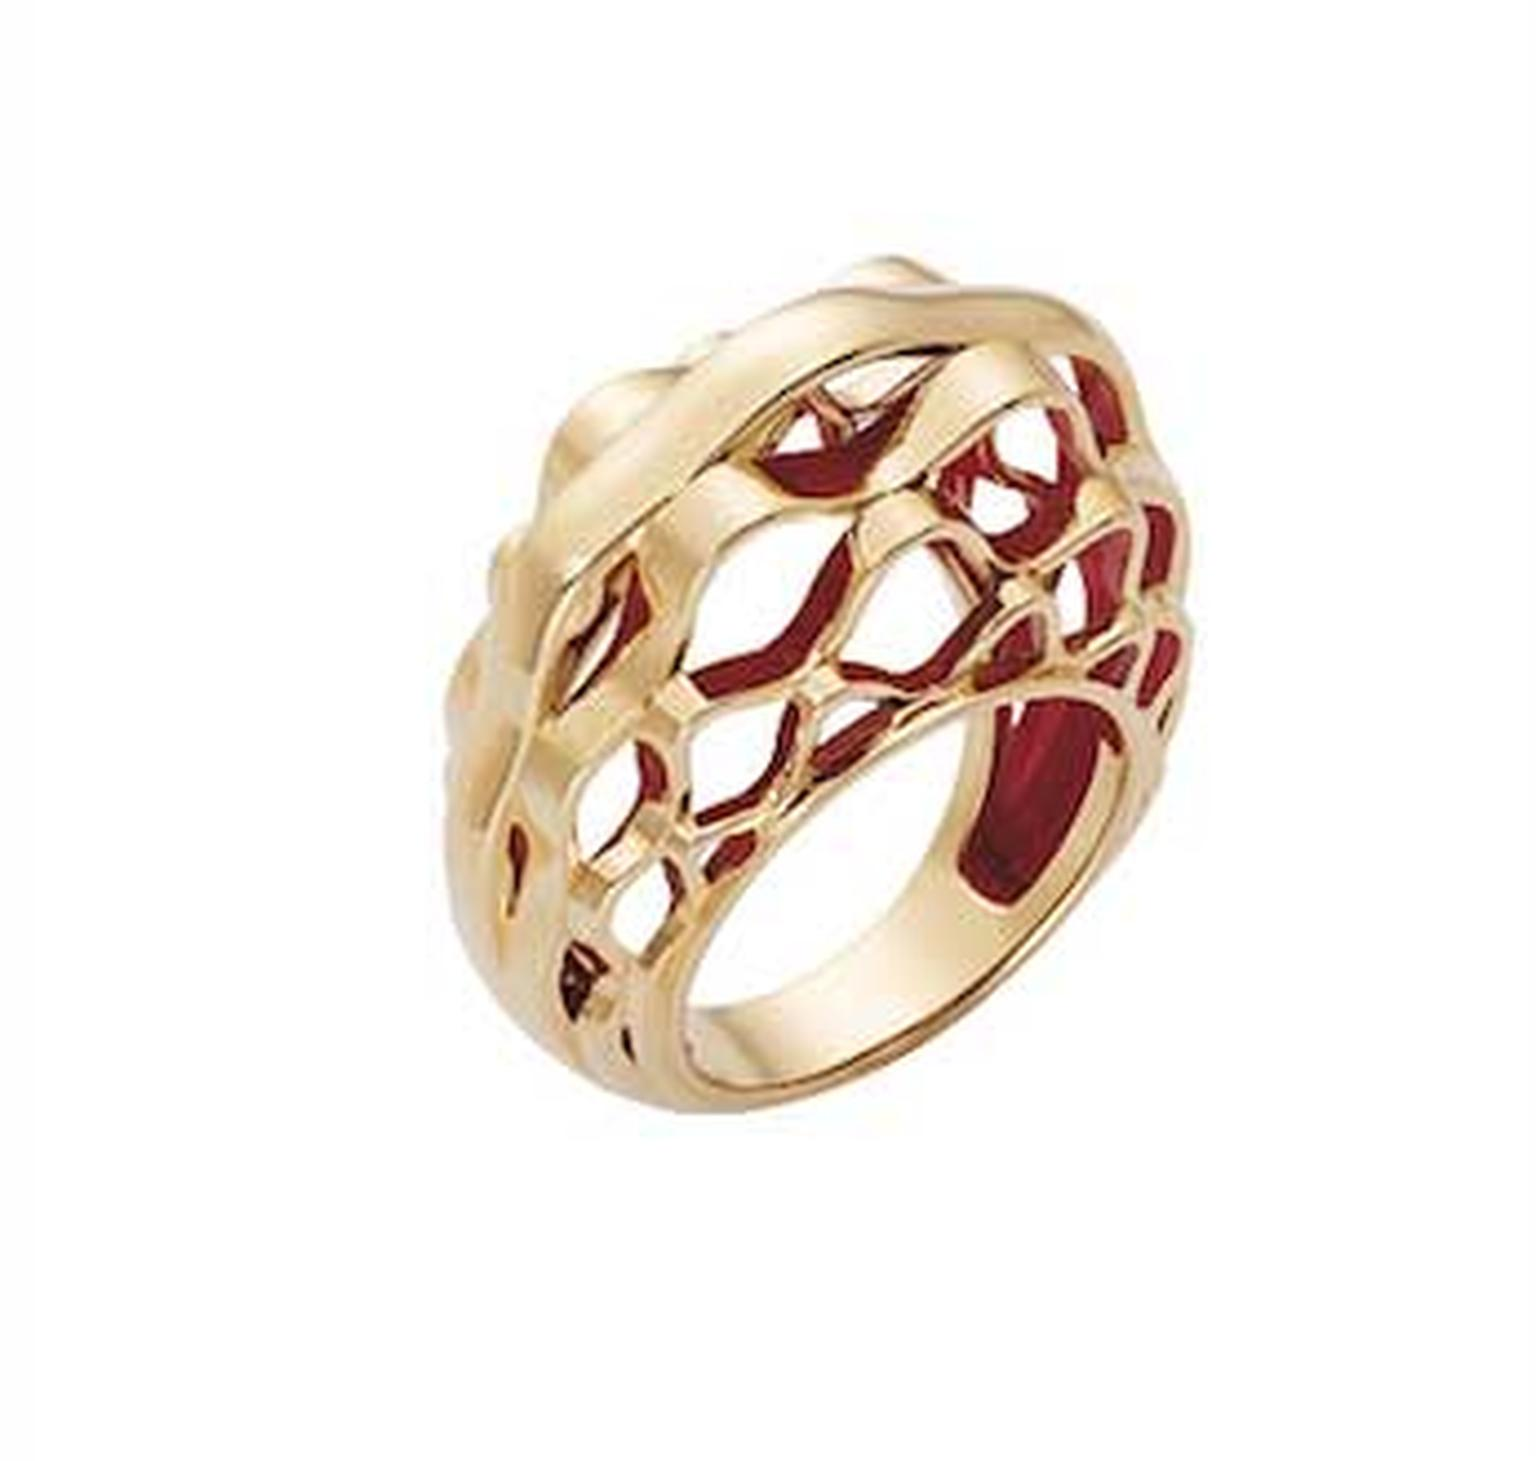 The glass dome of the Grand Palais is reflected in this dramatic new Cartier Paris Nouvelle Vague ring in yellow gold.